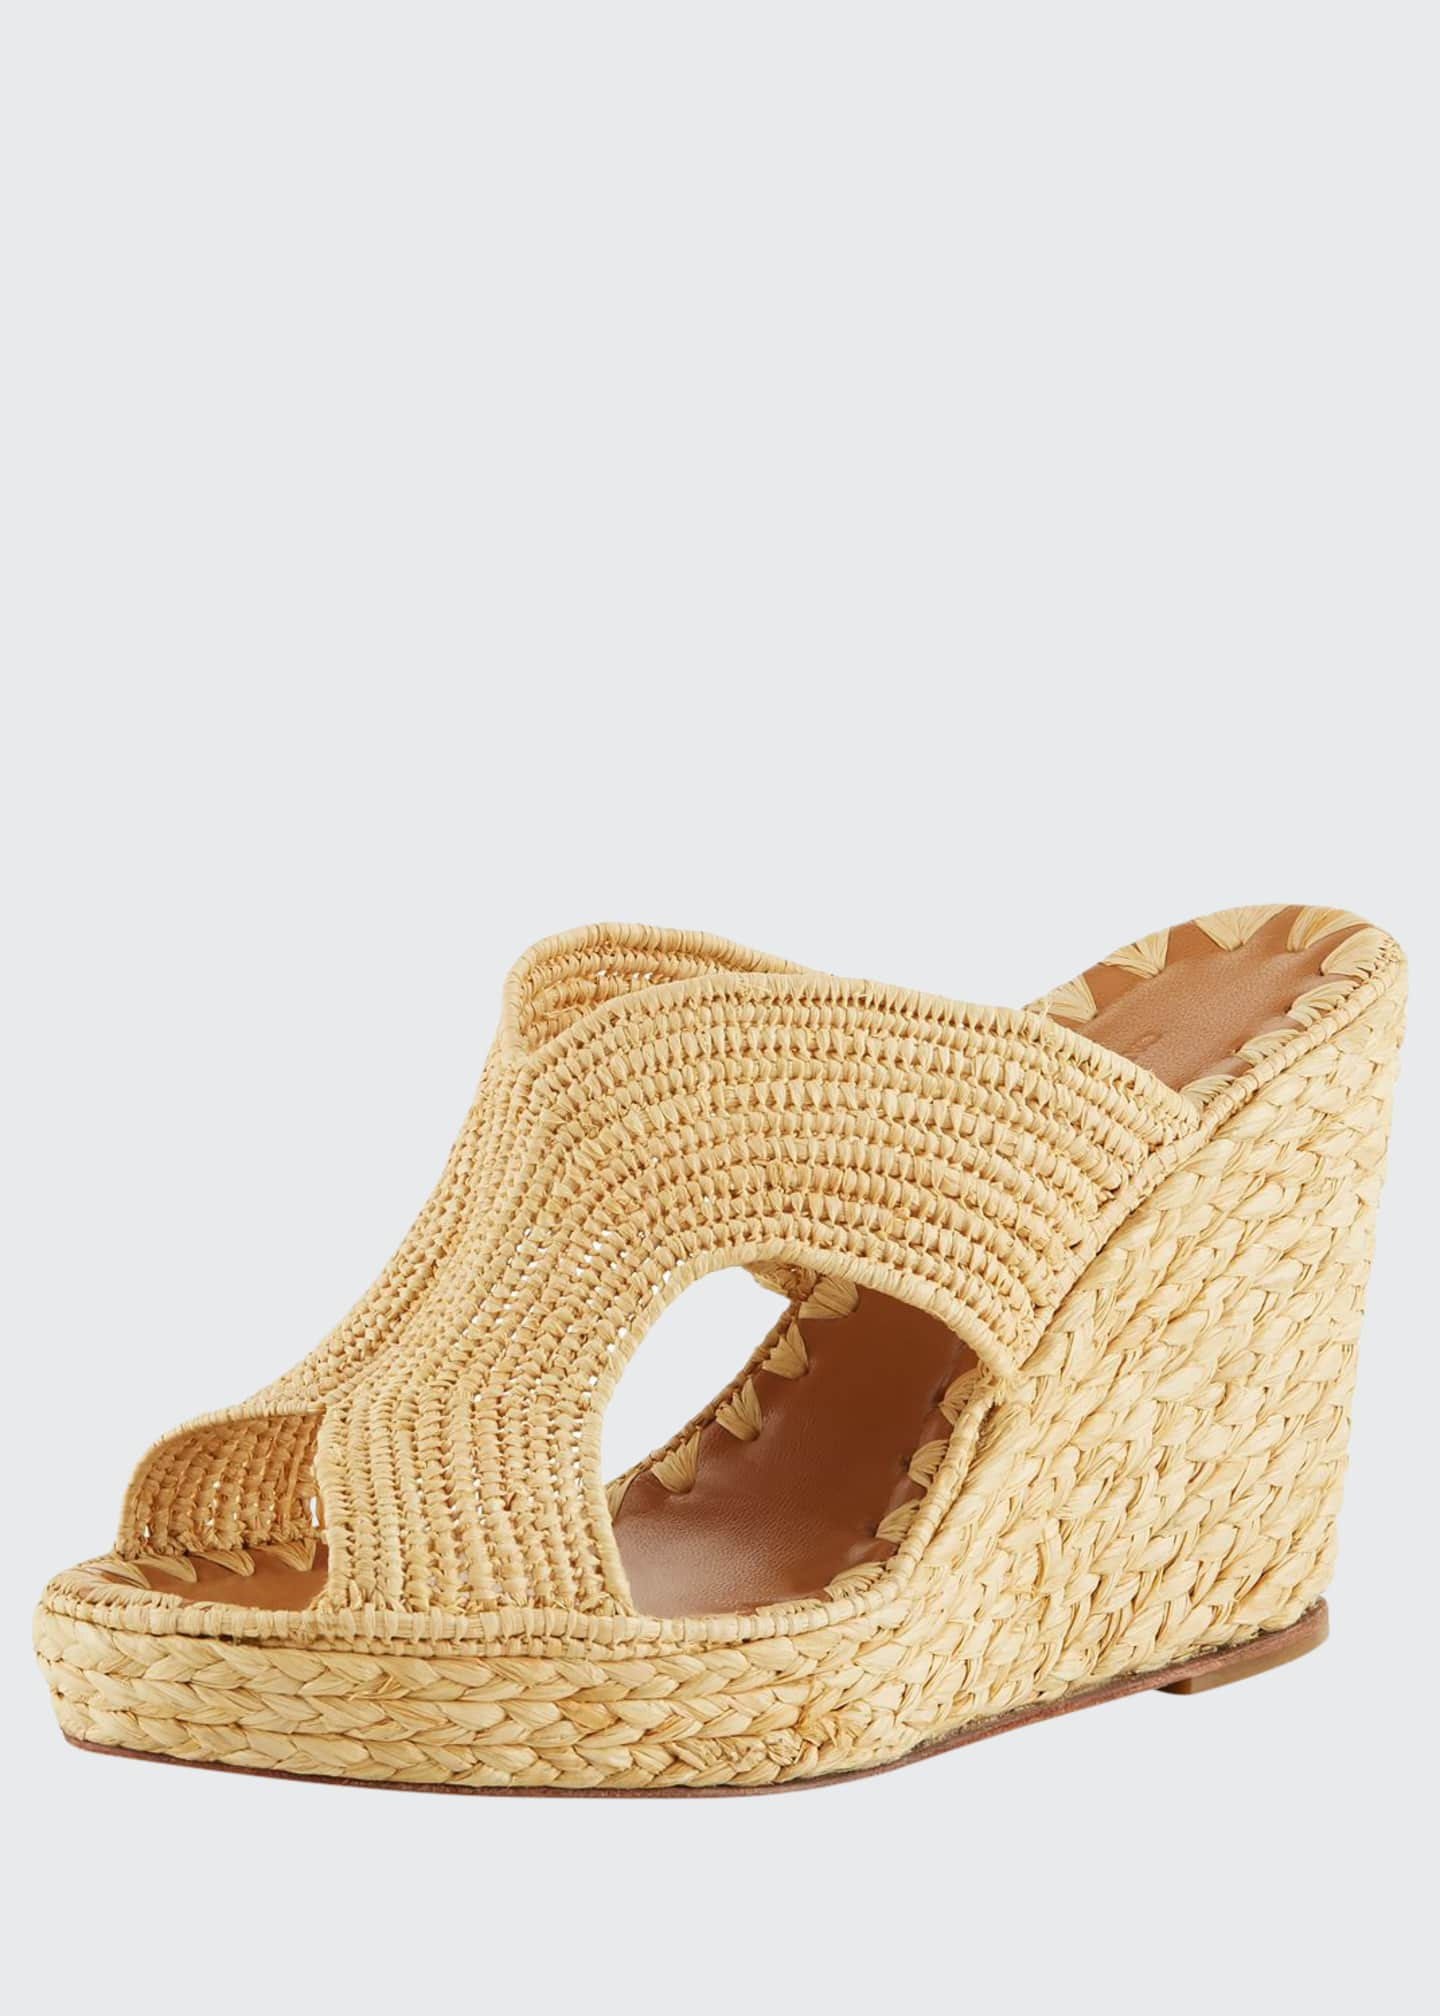 Carrie Forbes Lina Cutout Slide Wedge Sandals